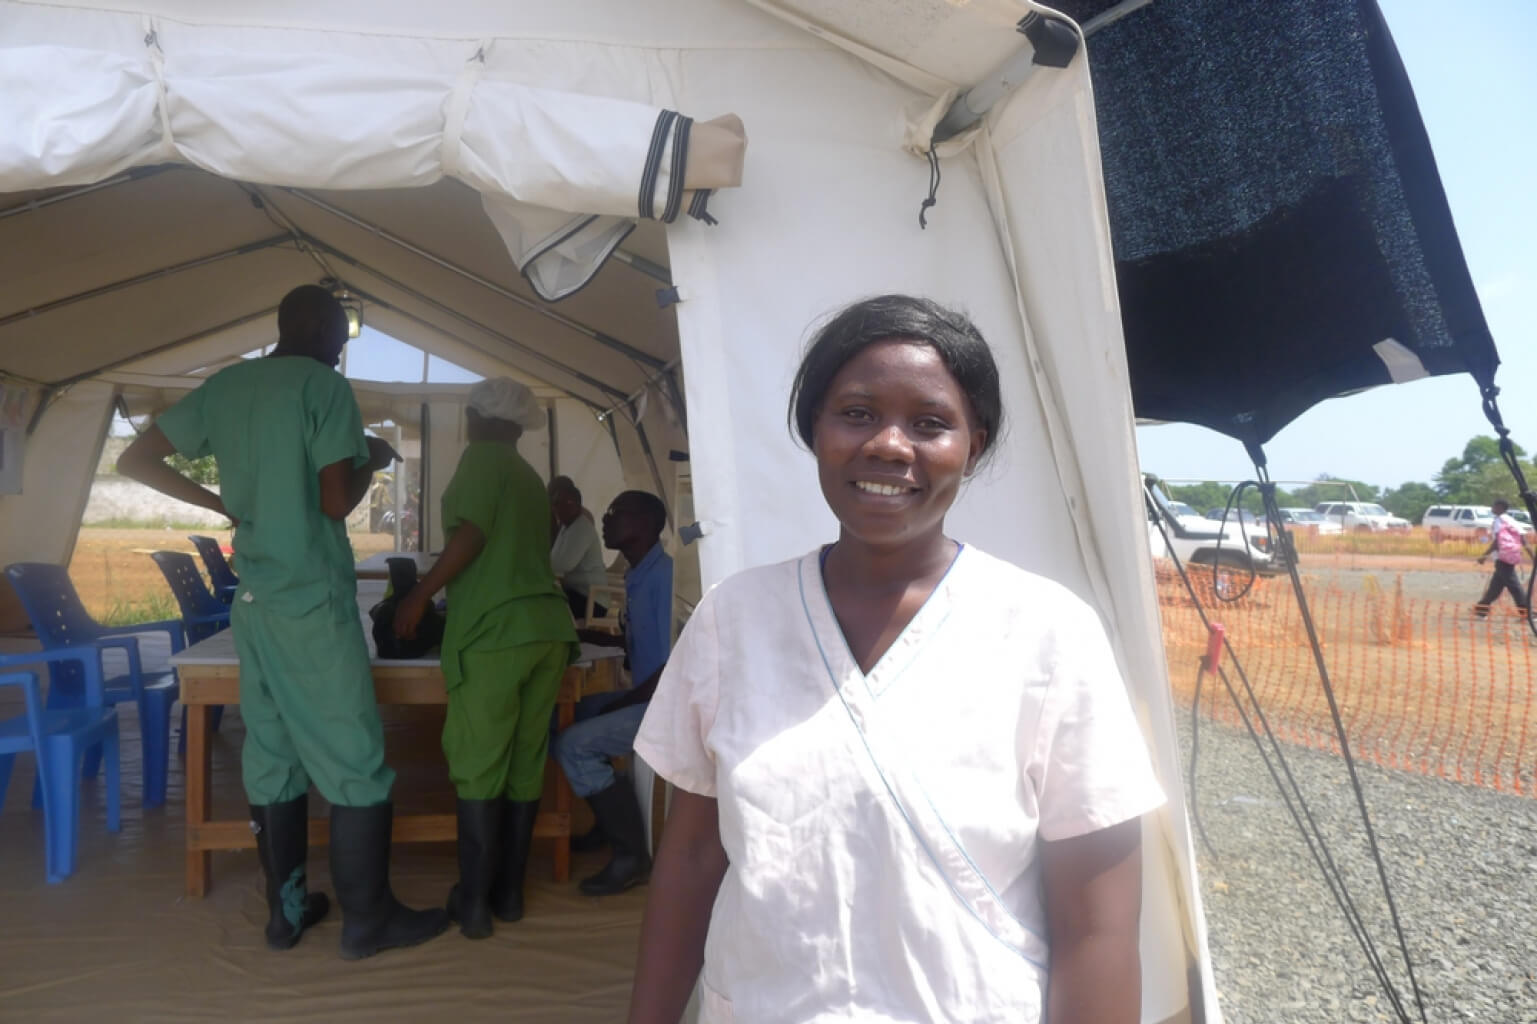 Health Worker in Uniform with Tent of Workers in Background